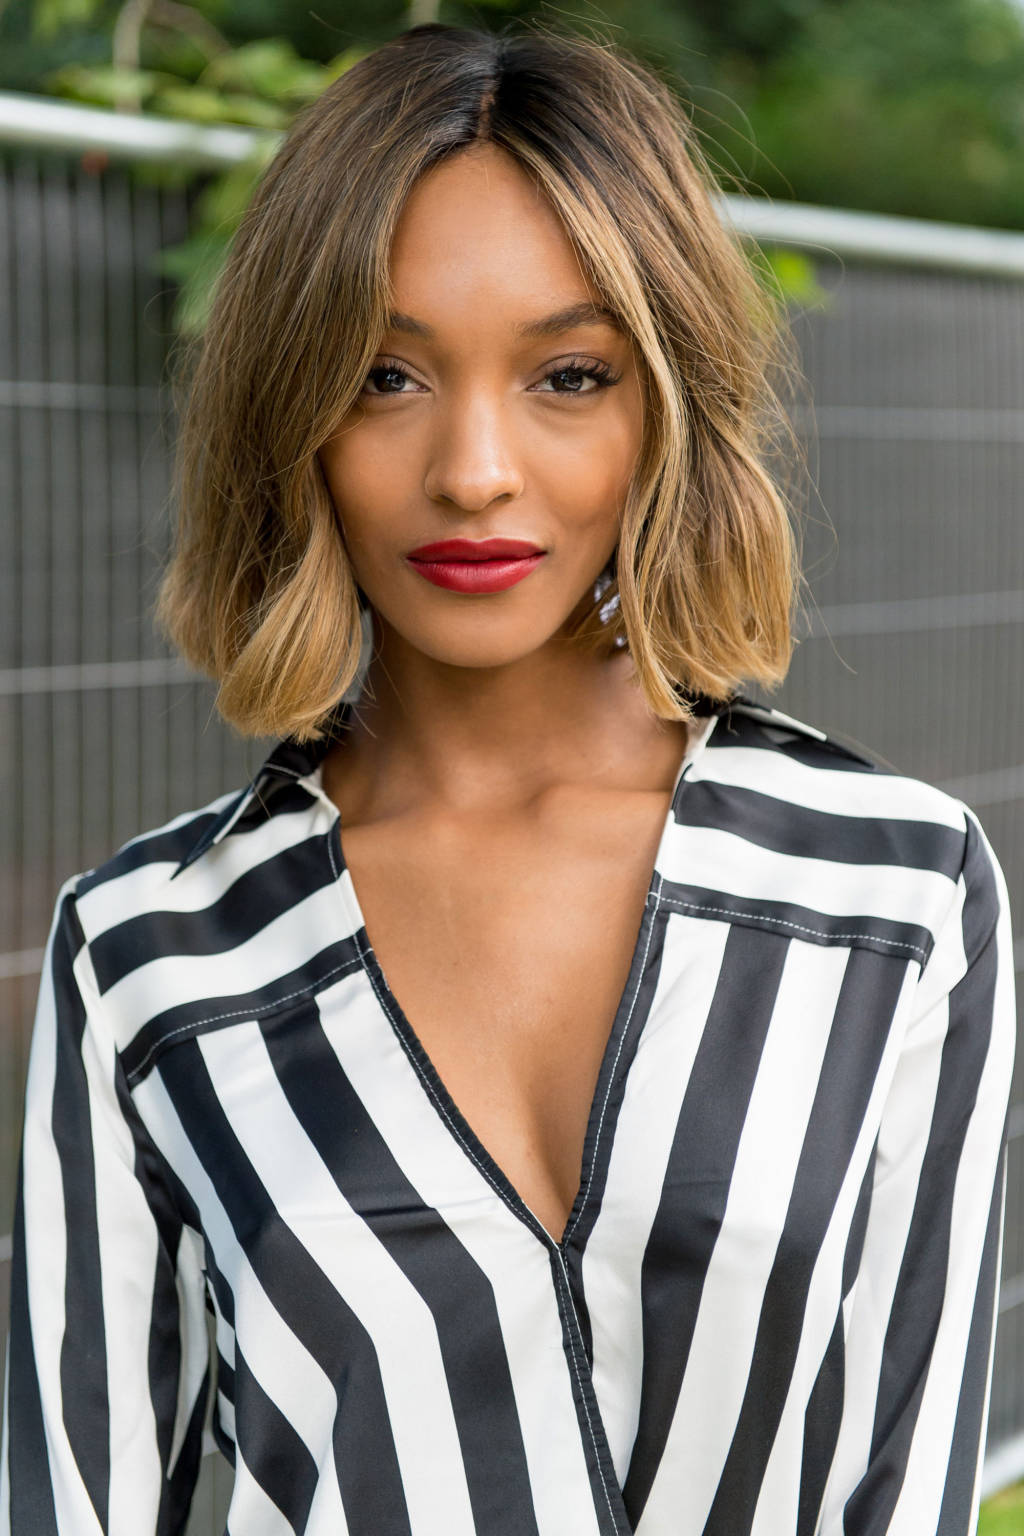 Blunt bob on Jourdan Dunn